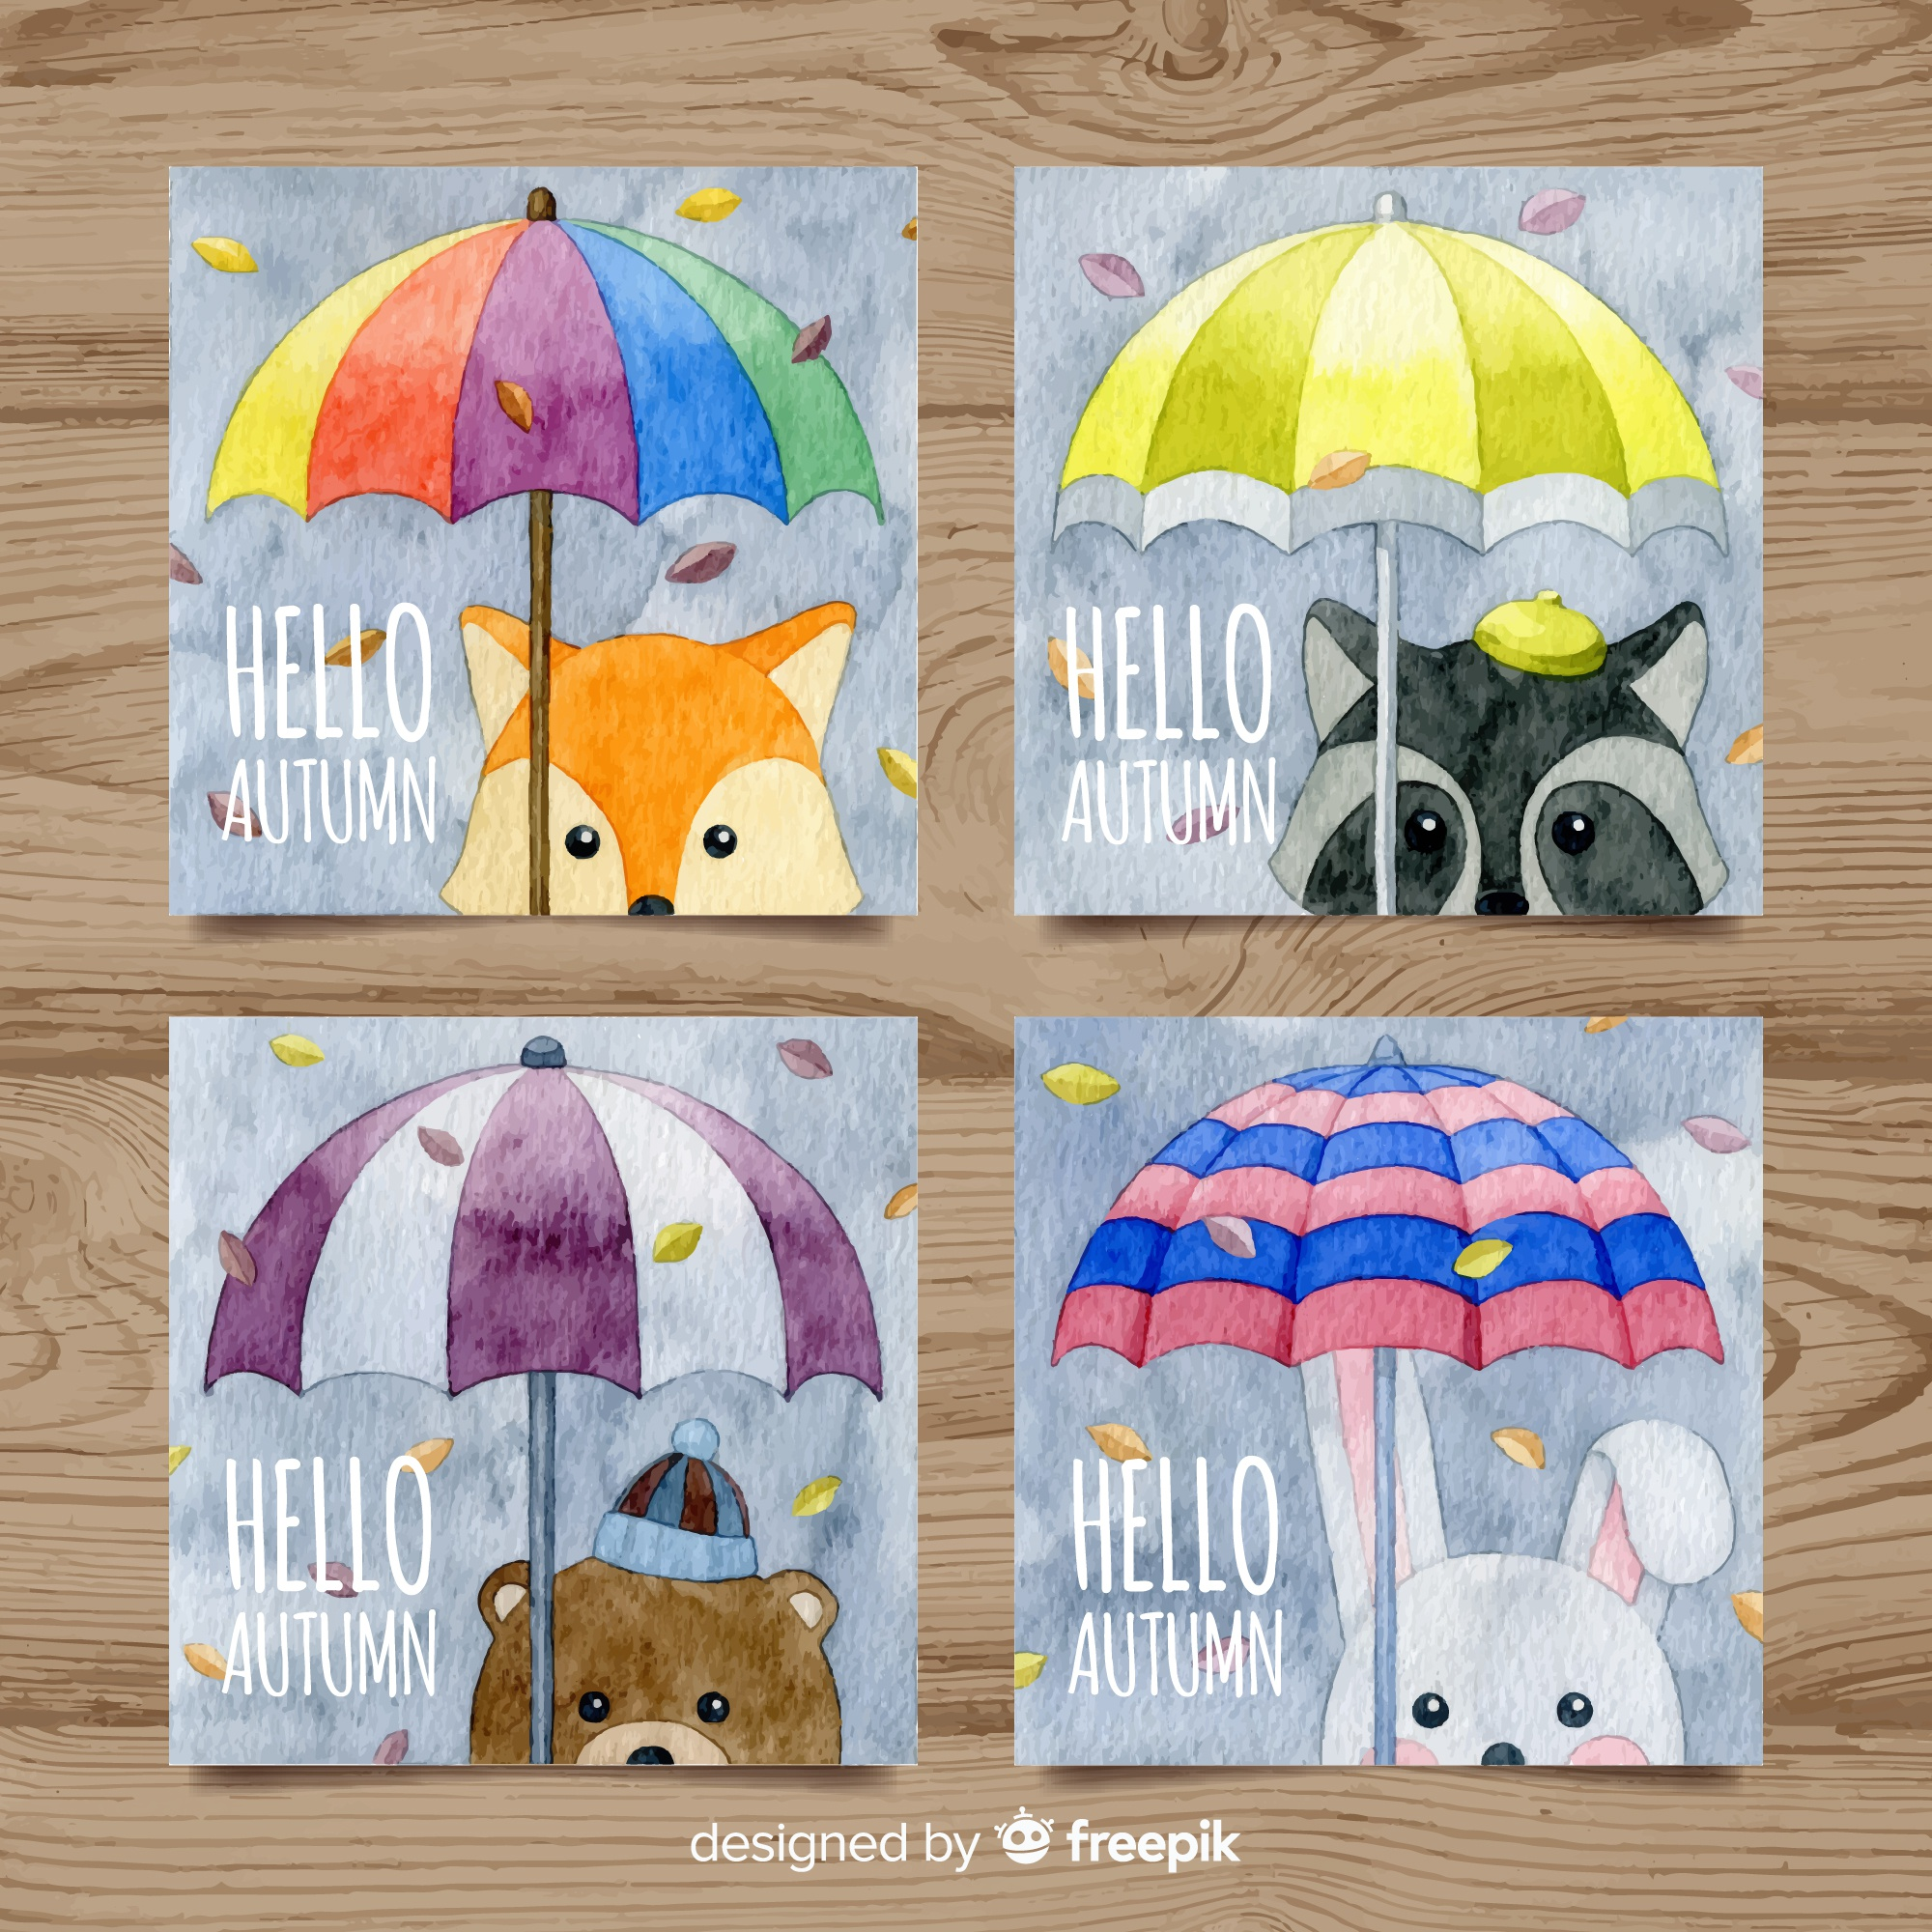 Autumn cards collection with cute animals in watercolor style